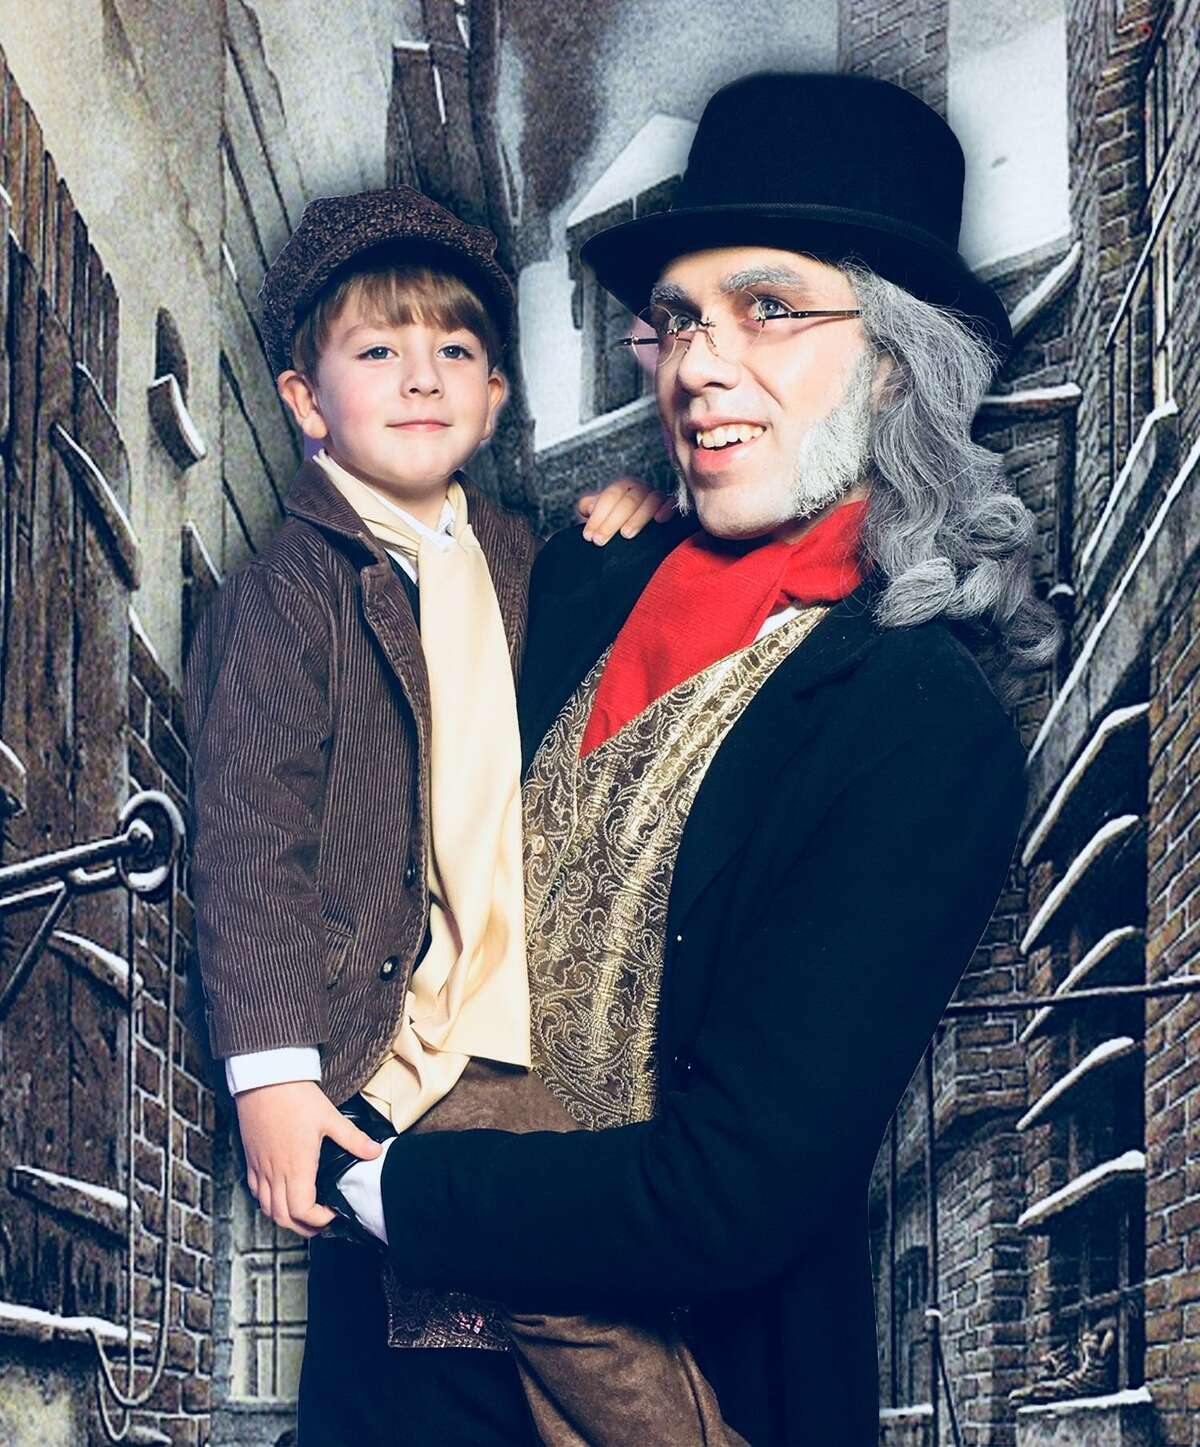 """Matthew Silvestro (left) plays Tiny Tim and Sean Salazar plays Scrooge in the Roxie Theatre's staging of """"A Christmas Carol."""""""